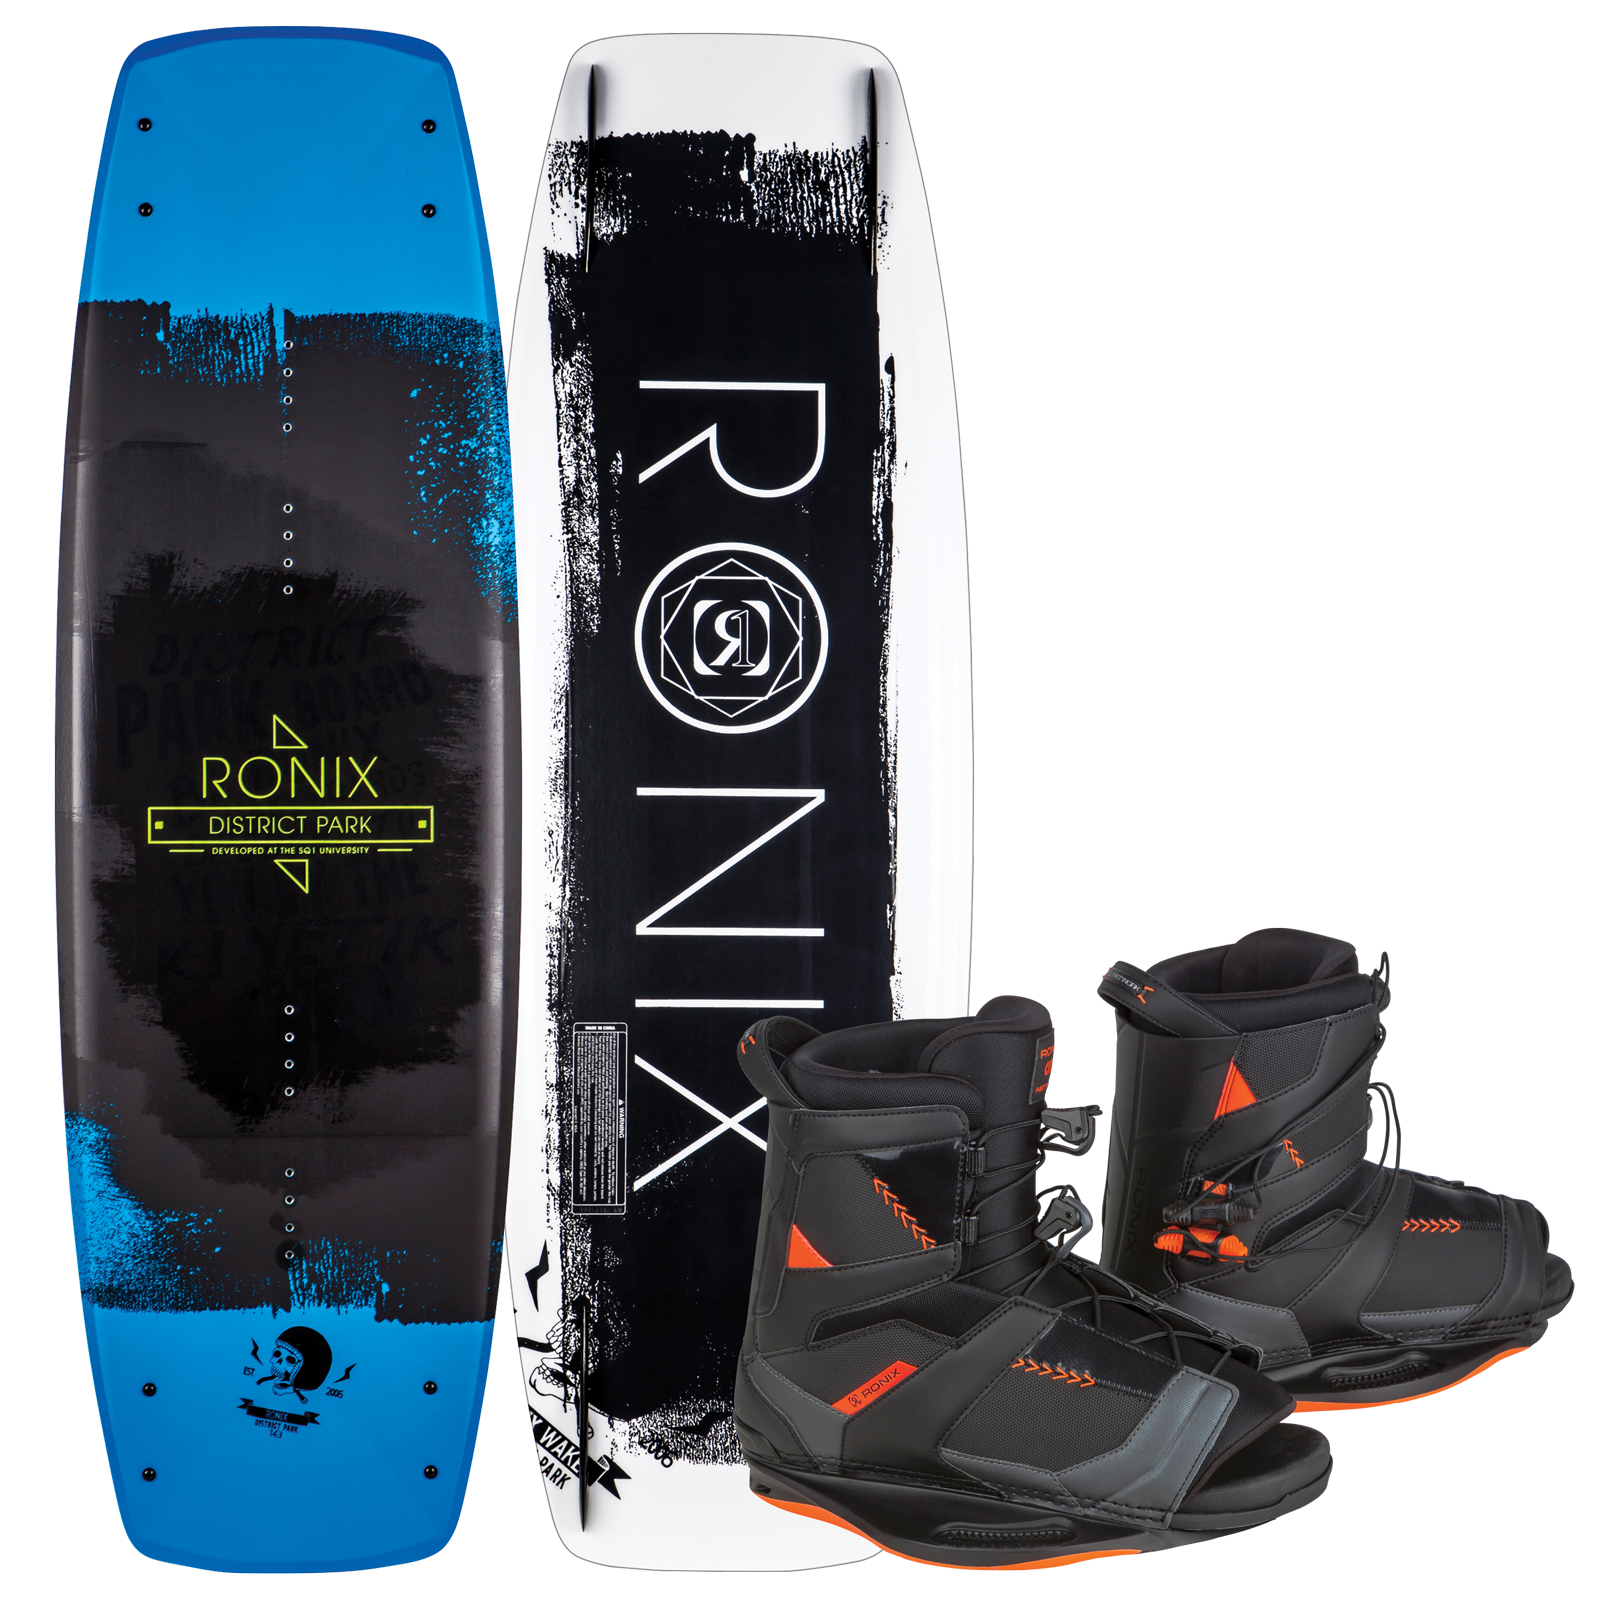 DISTRICT PARK 143 W/ NETWORK PACKAGE RONIX 2017